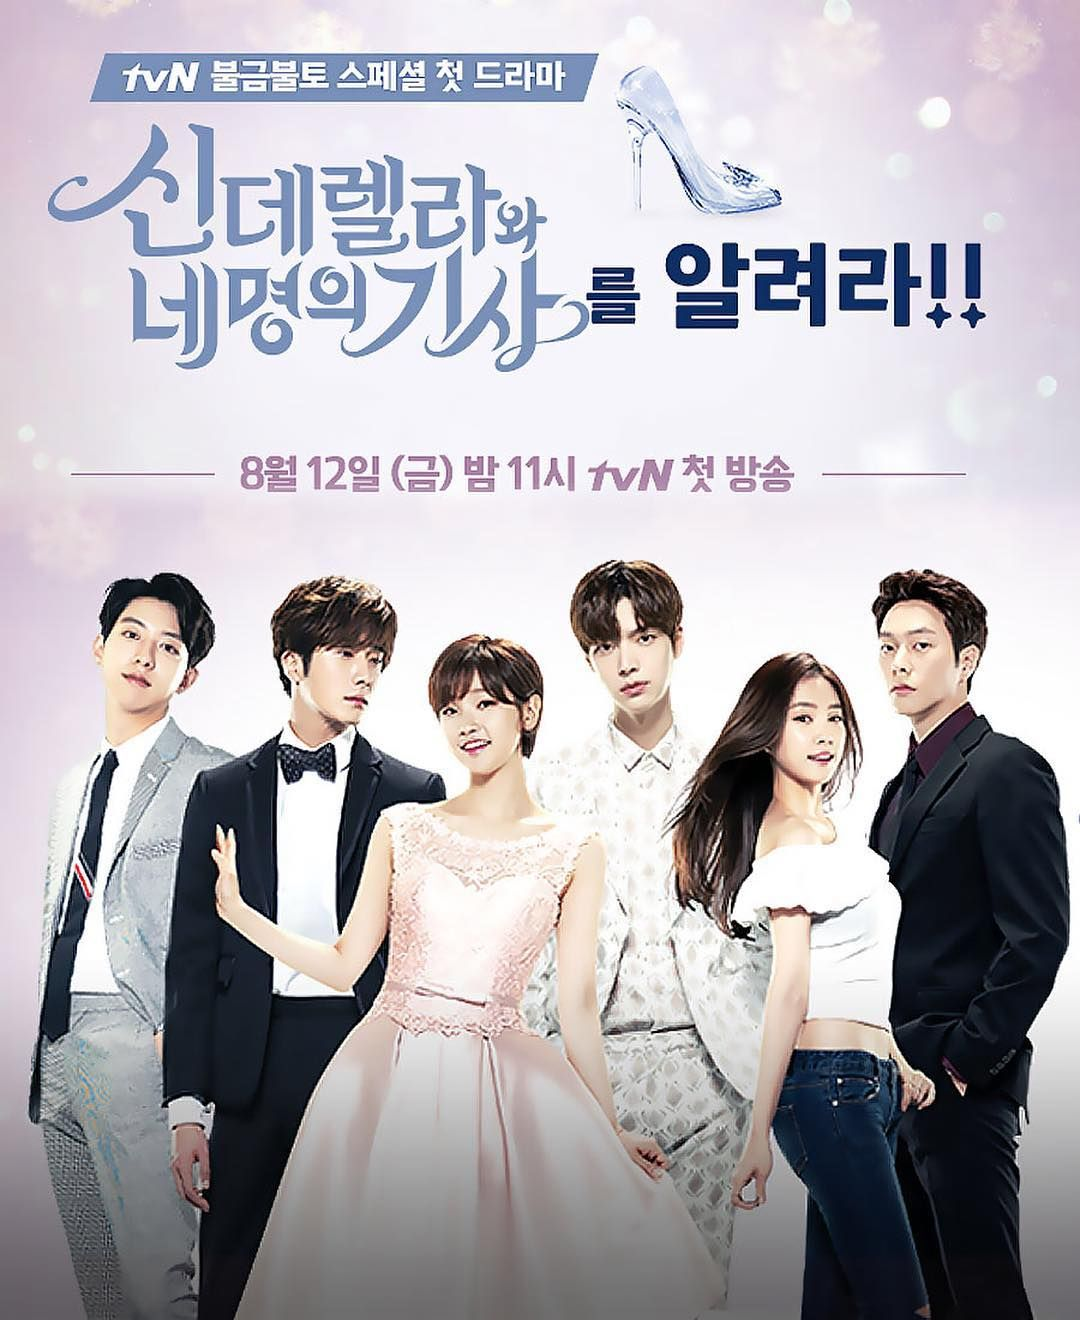 CINDERELLA AND THE FOUR KNIGHTS IS A DRAMA WITH 16